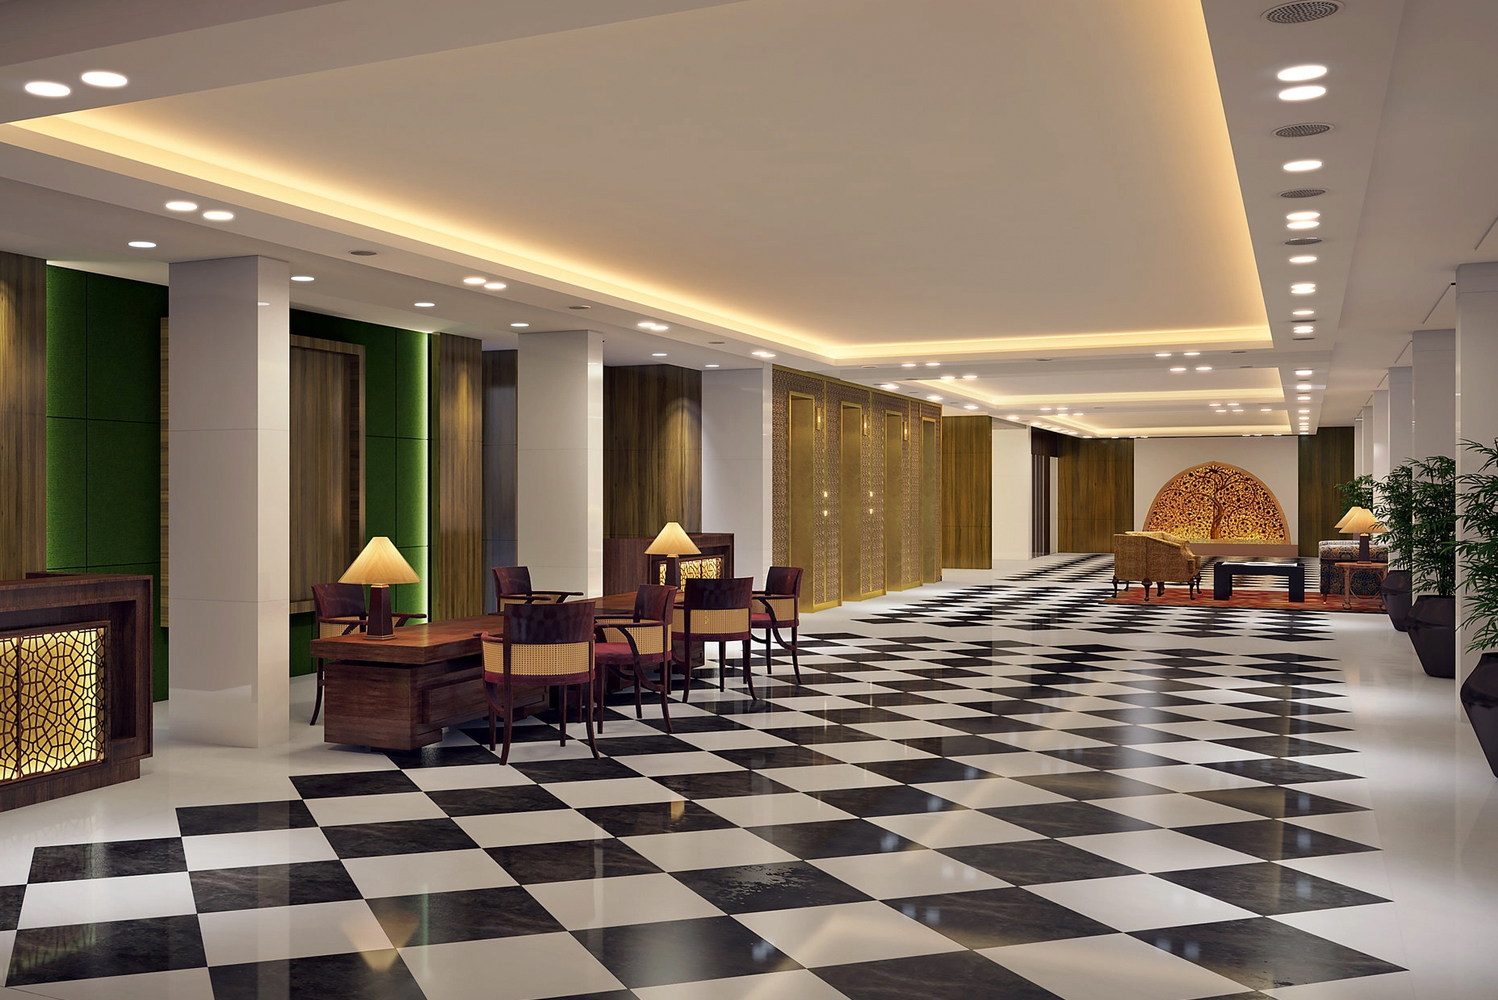 Oberoi Group's flagship property was influenced by the modernist work of English architect Edward Lutyens.